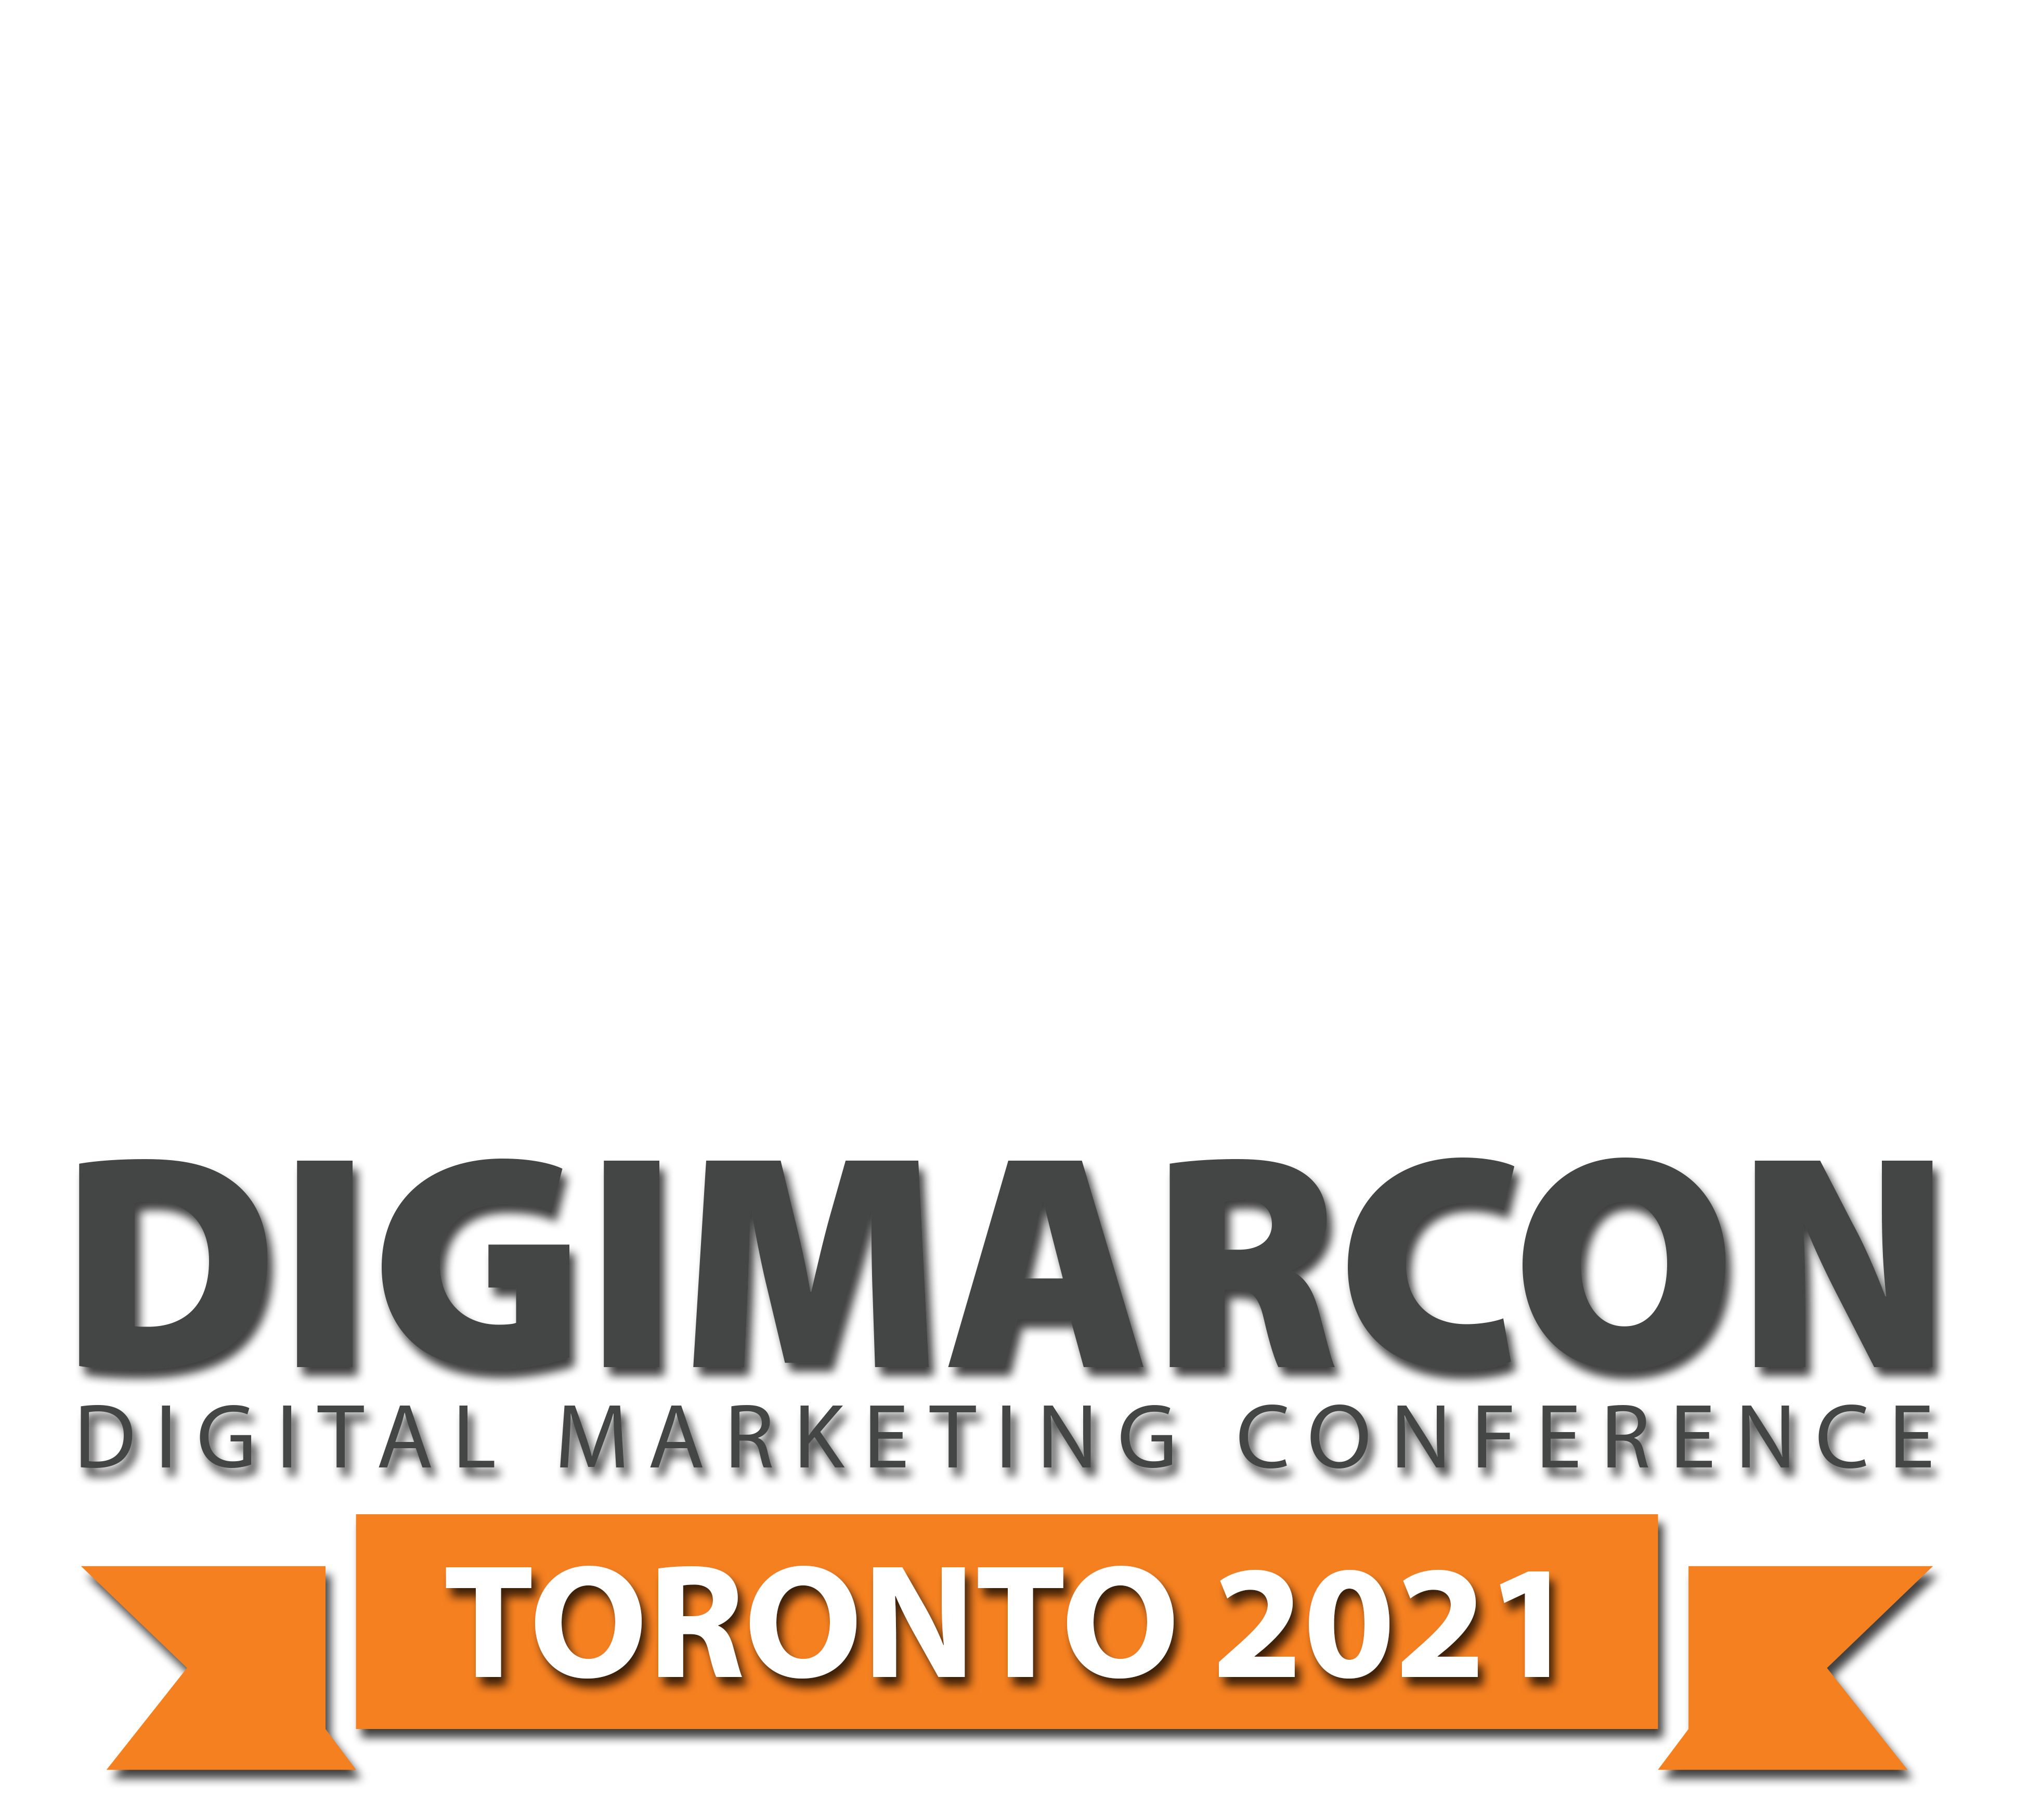 DigiMarCon Toronto 2020 – Digital Marketing Conference & Exhibition